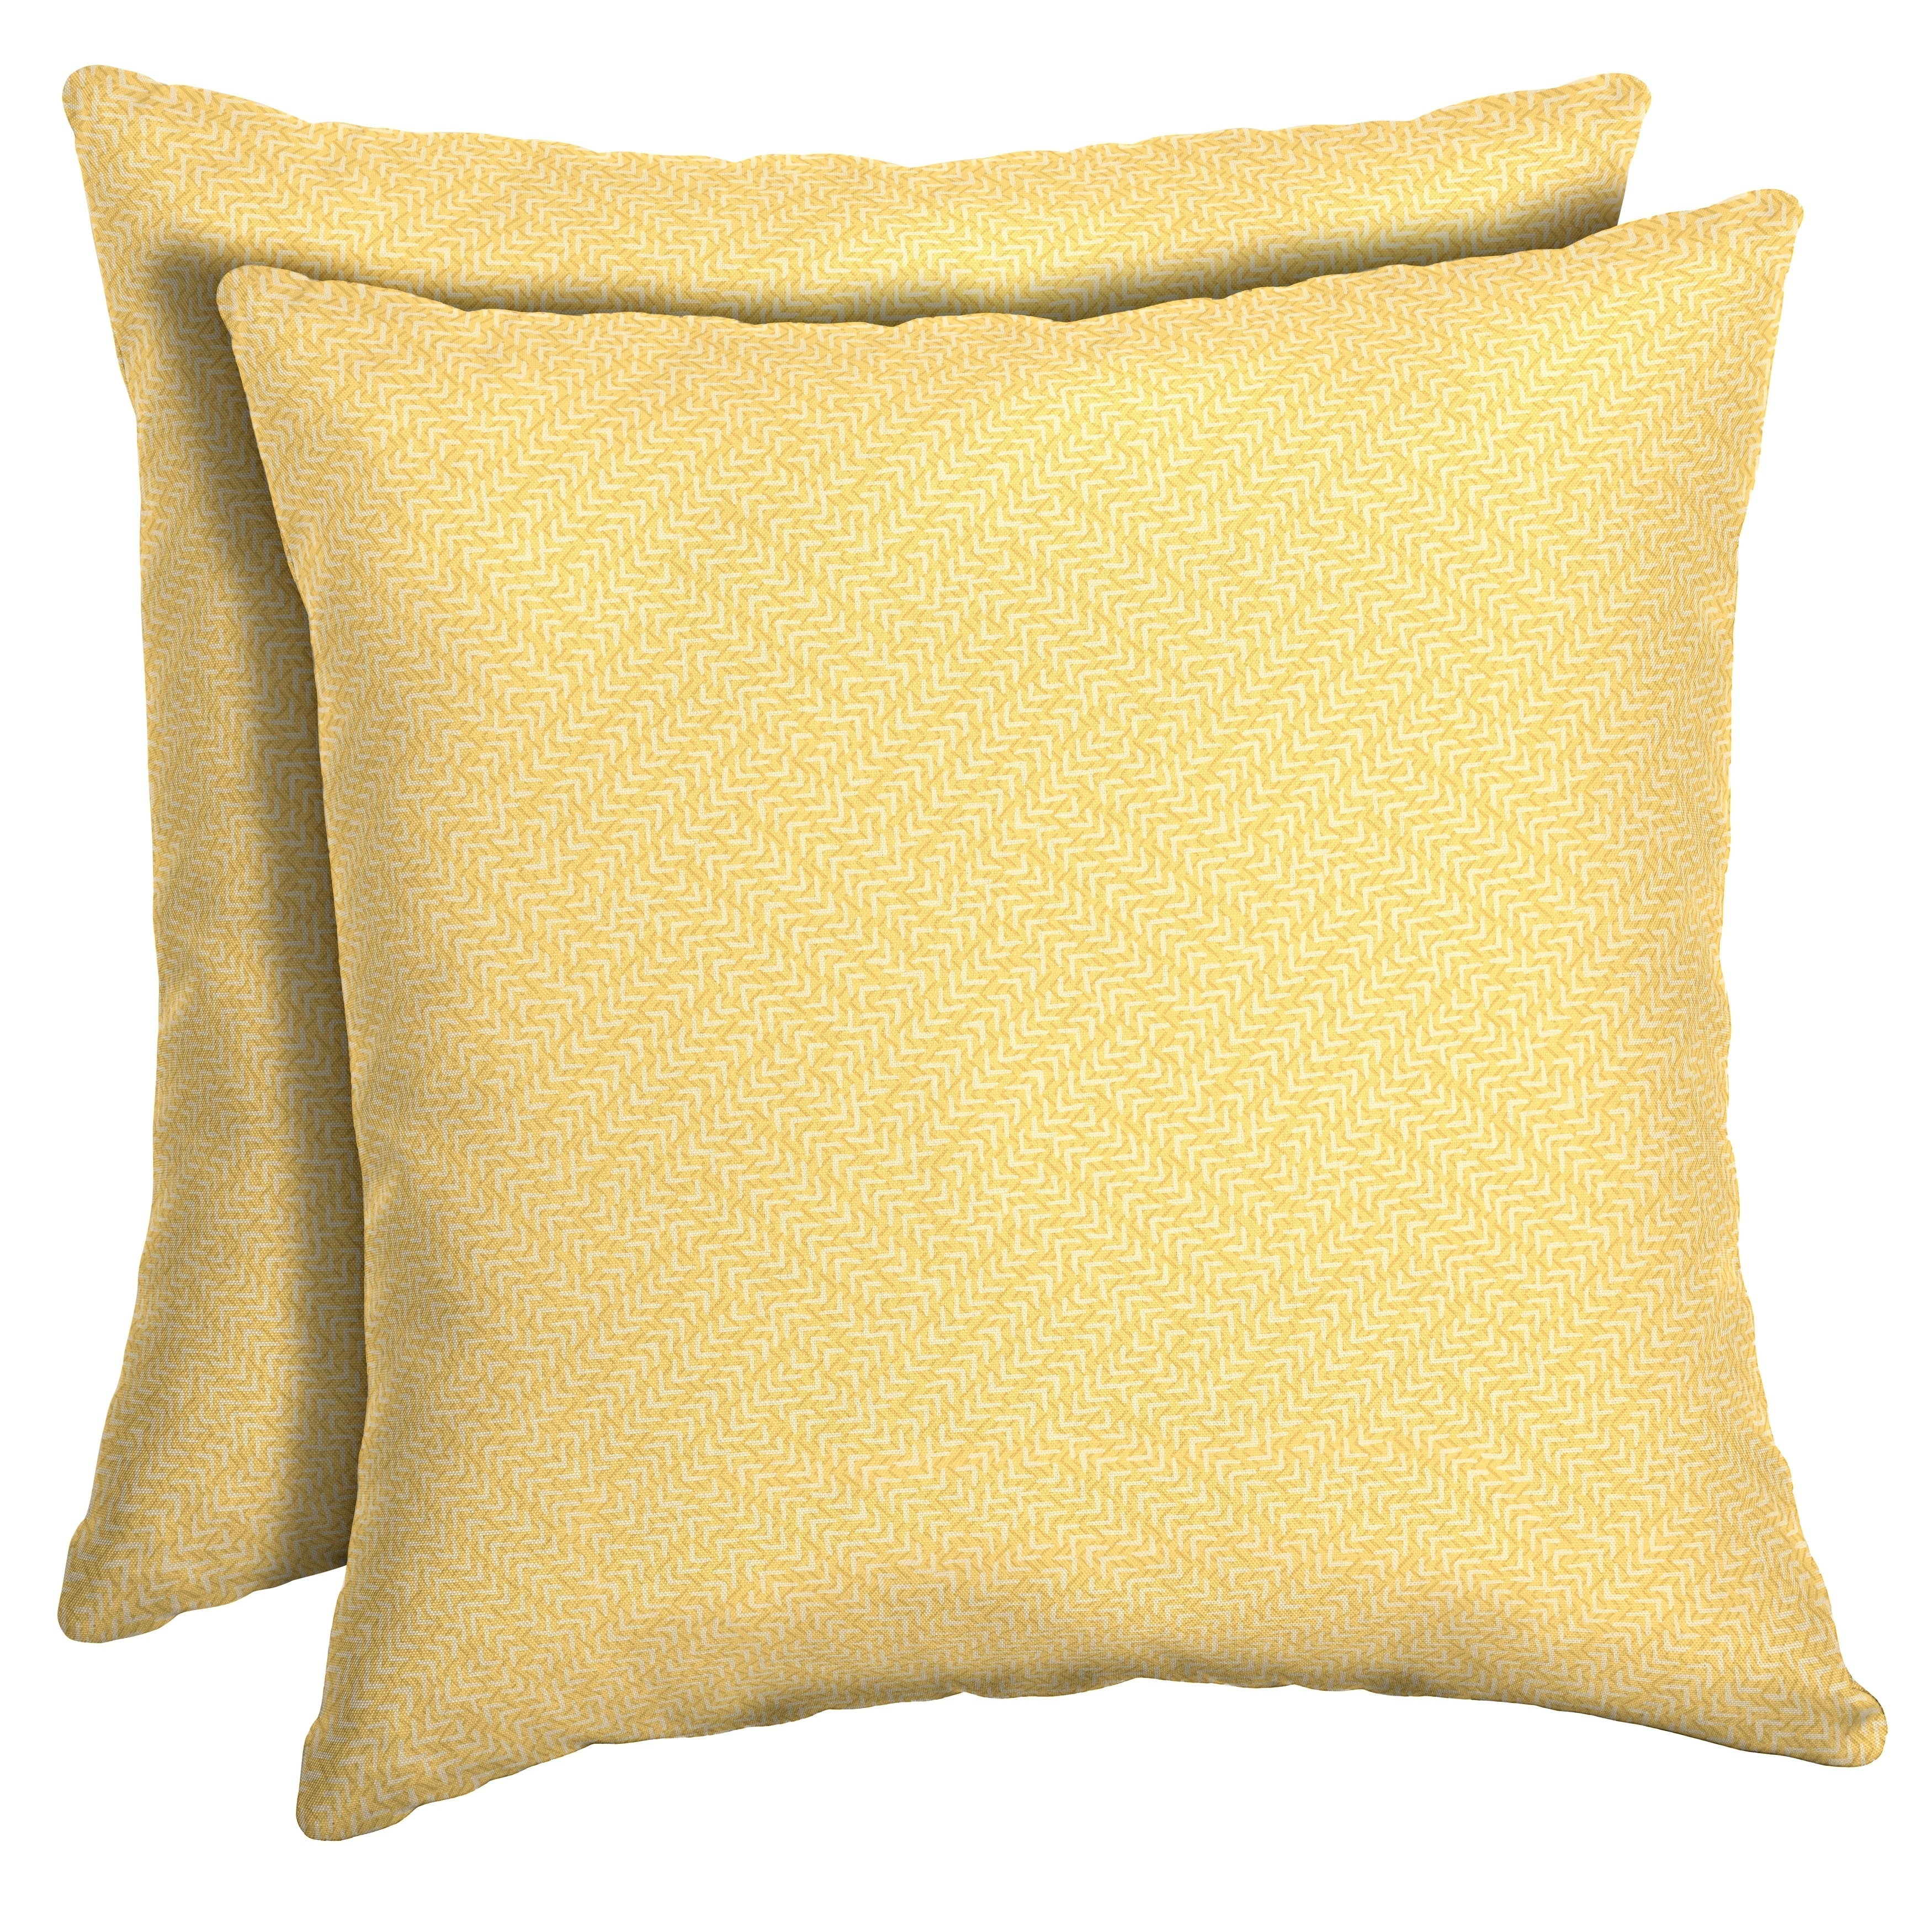 Shop Arden Selections Shirt Texture Outdoor Square Pillow 2 Pack